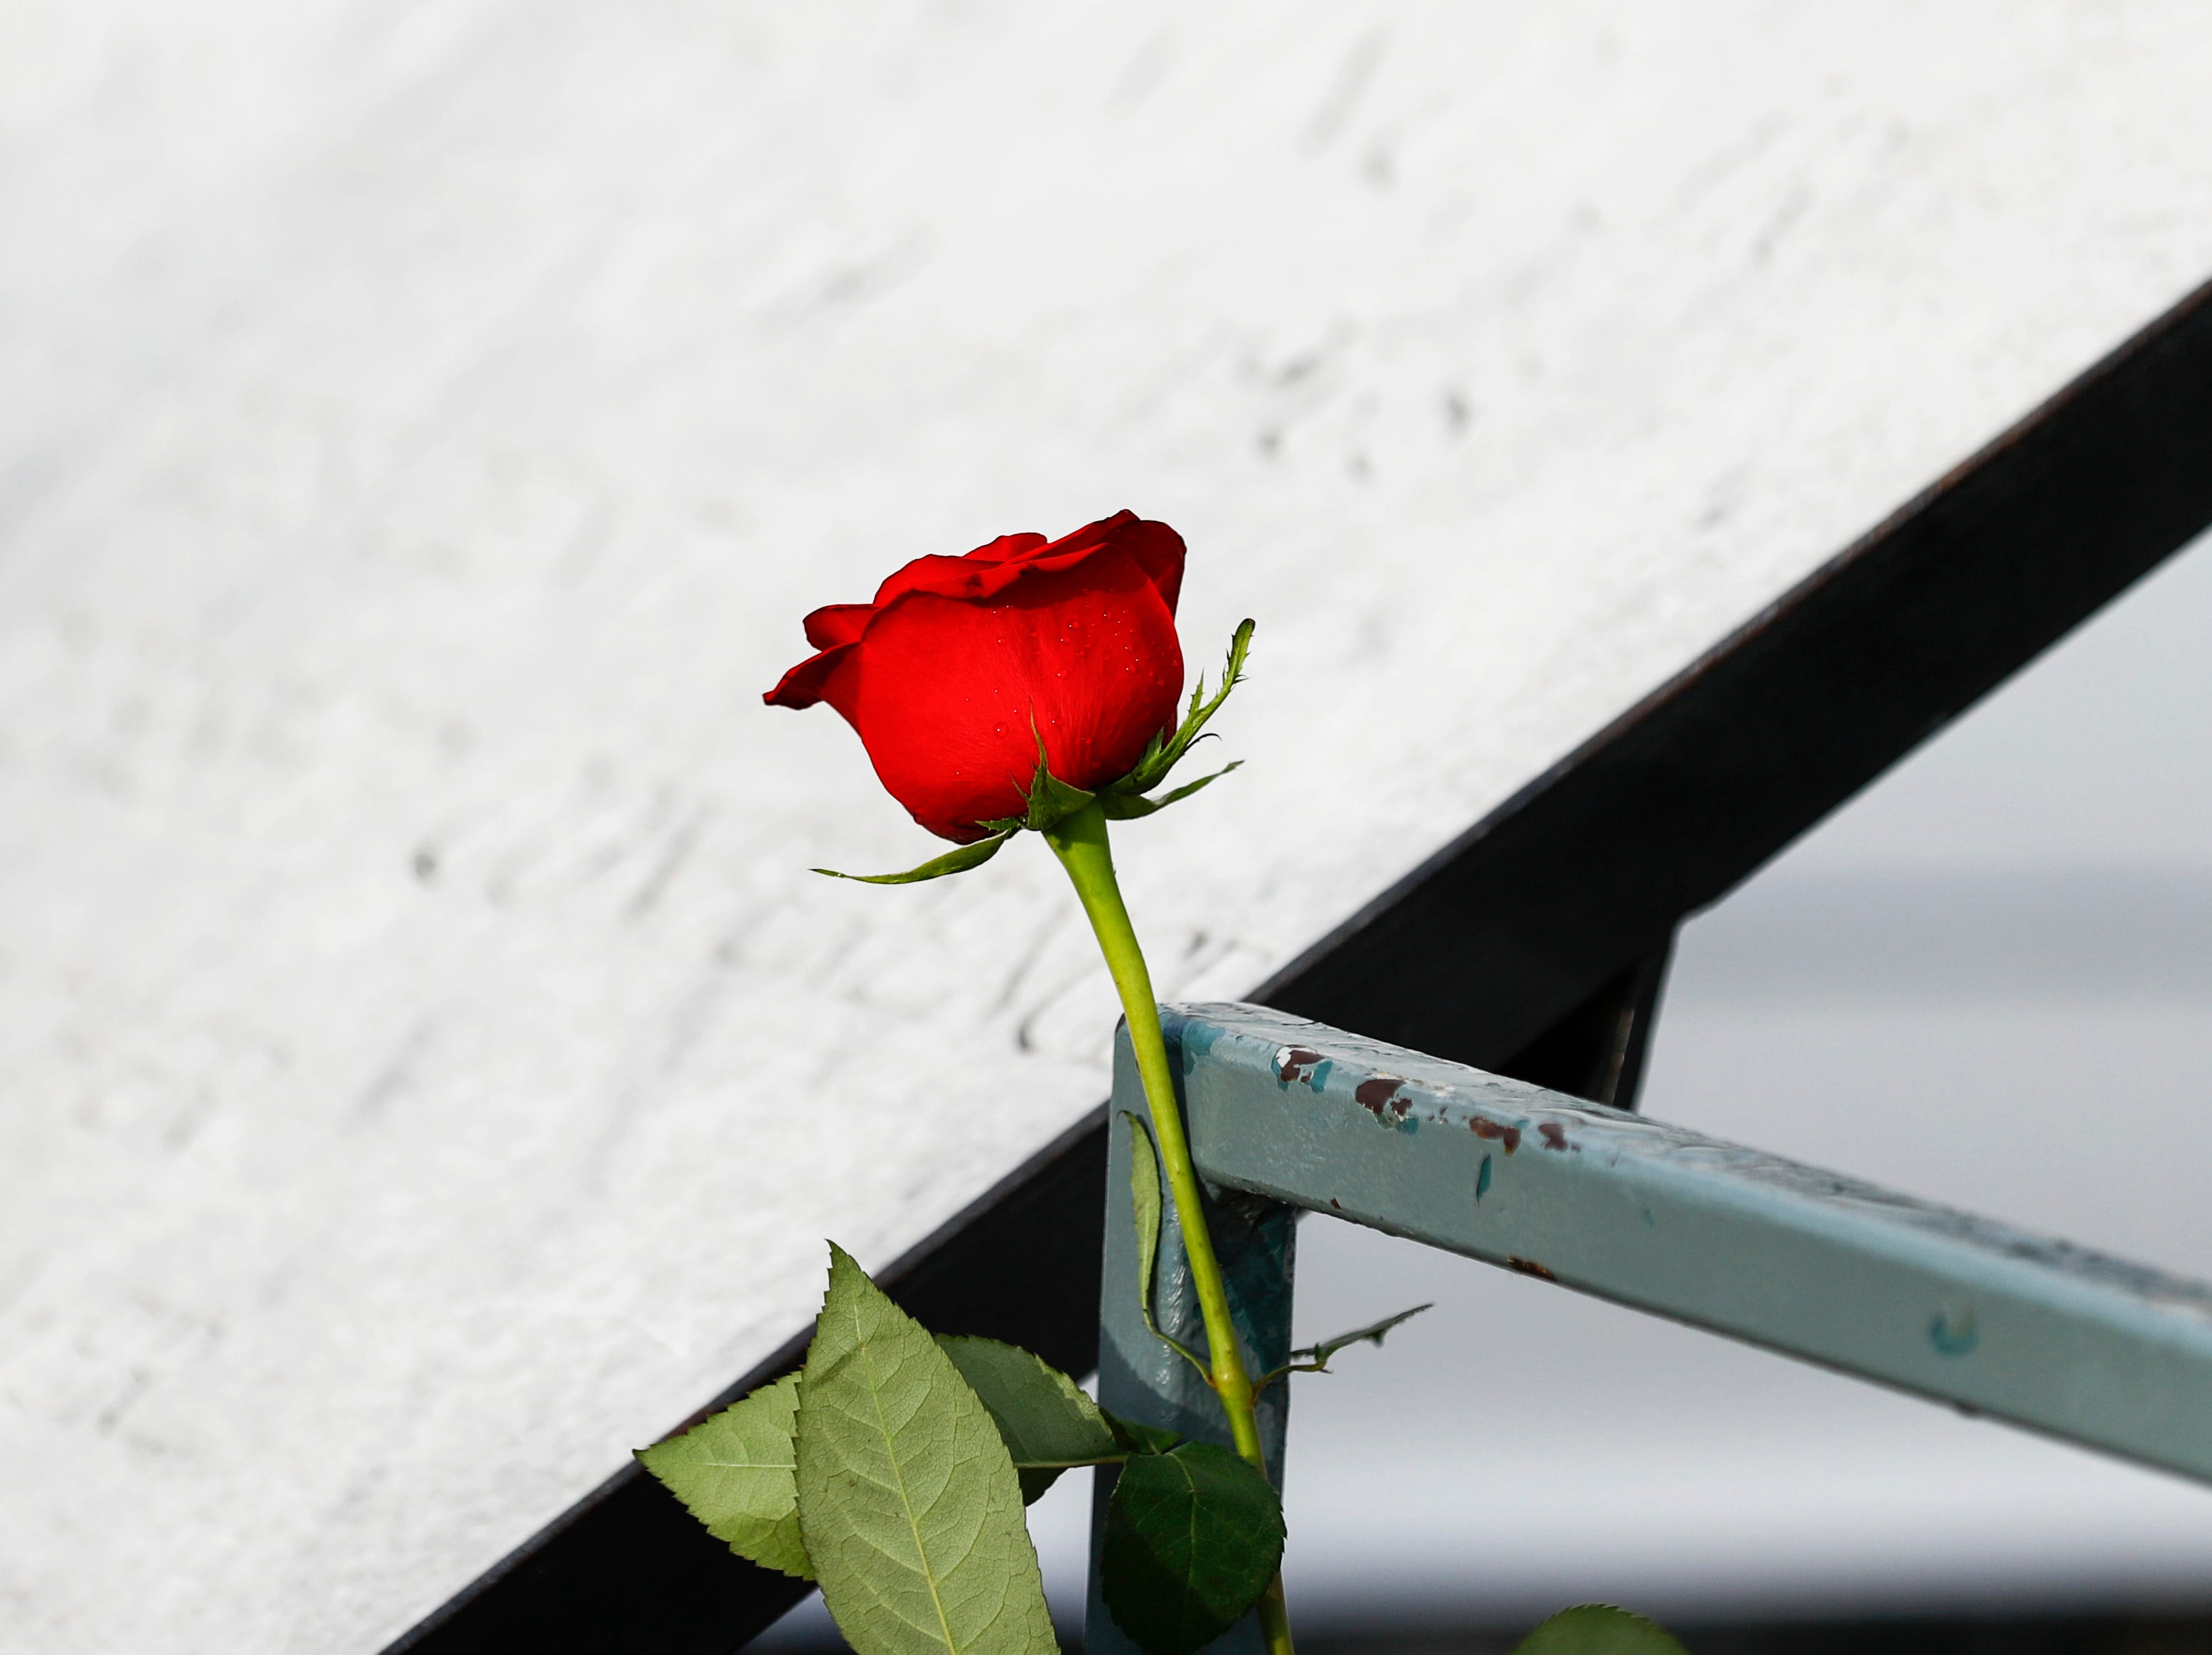 A rose is placed on a railing during a commemoration ceremony at the National Civil Rights Museum on April 4, 2019, on the 51st anniversary of Dr. Martin Luther King, Jr.'s assassination.